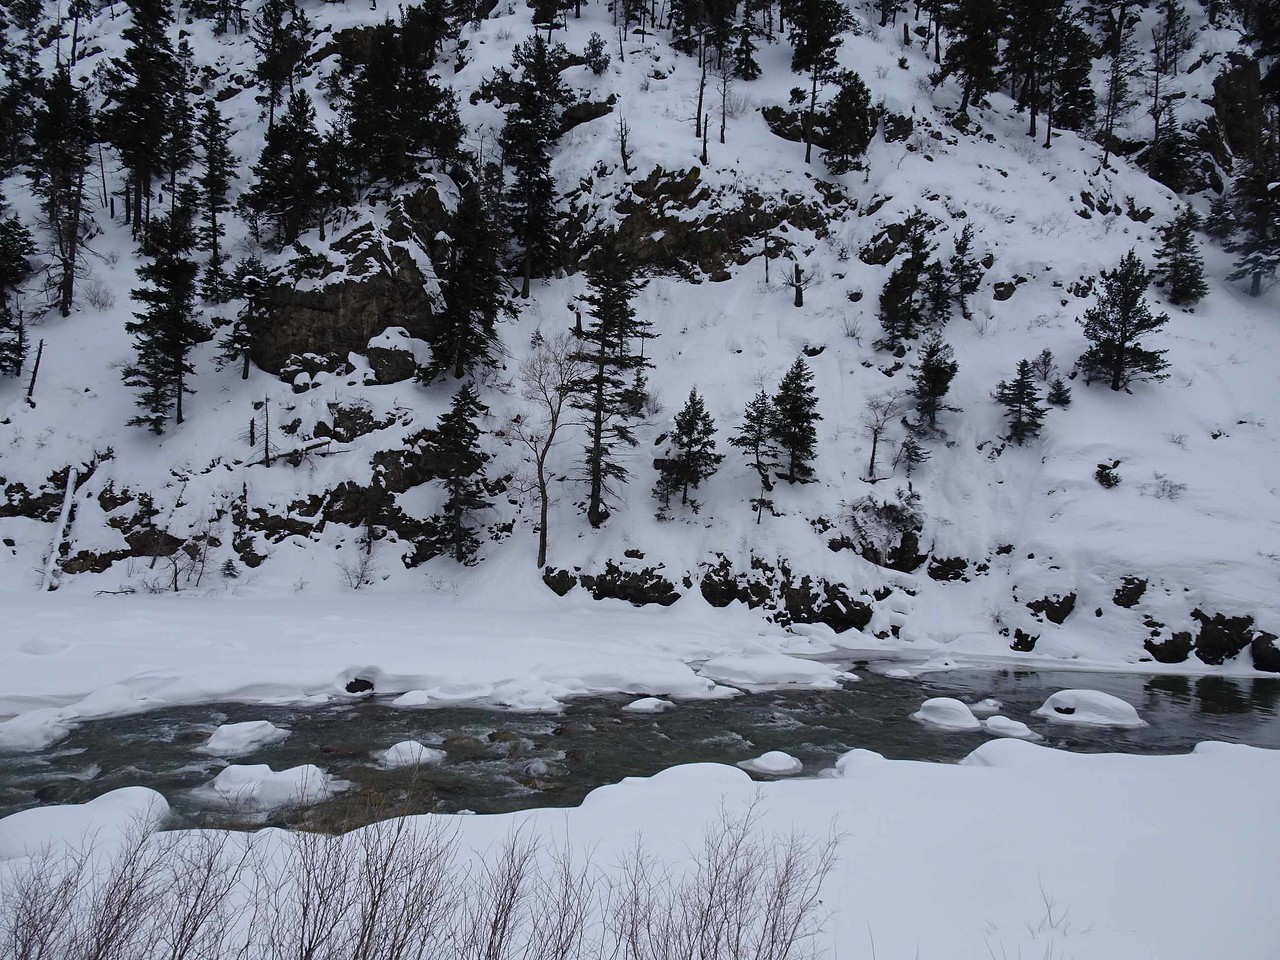 60 A snowy, icy river